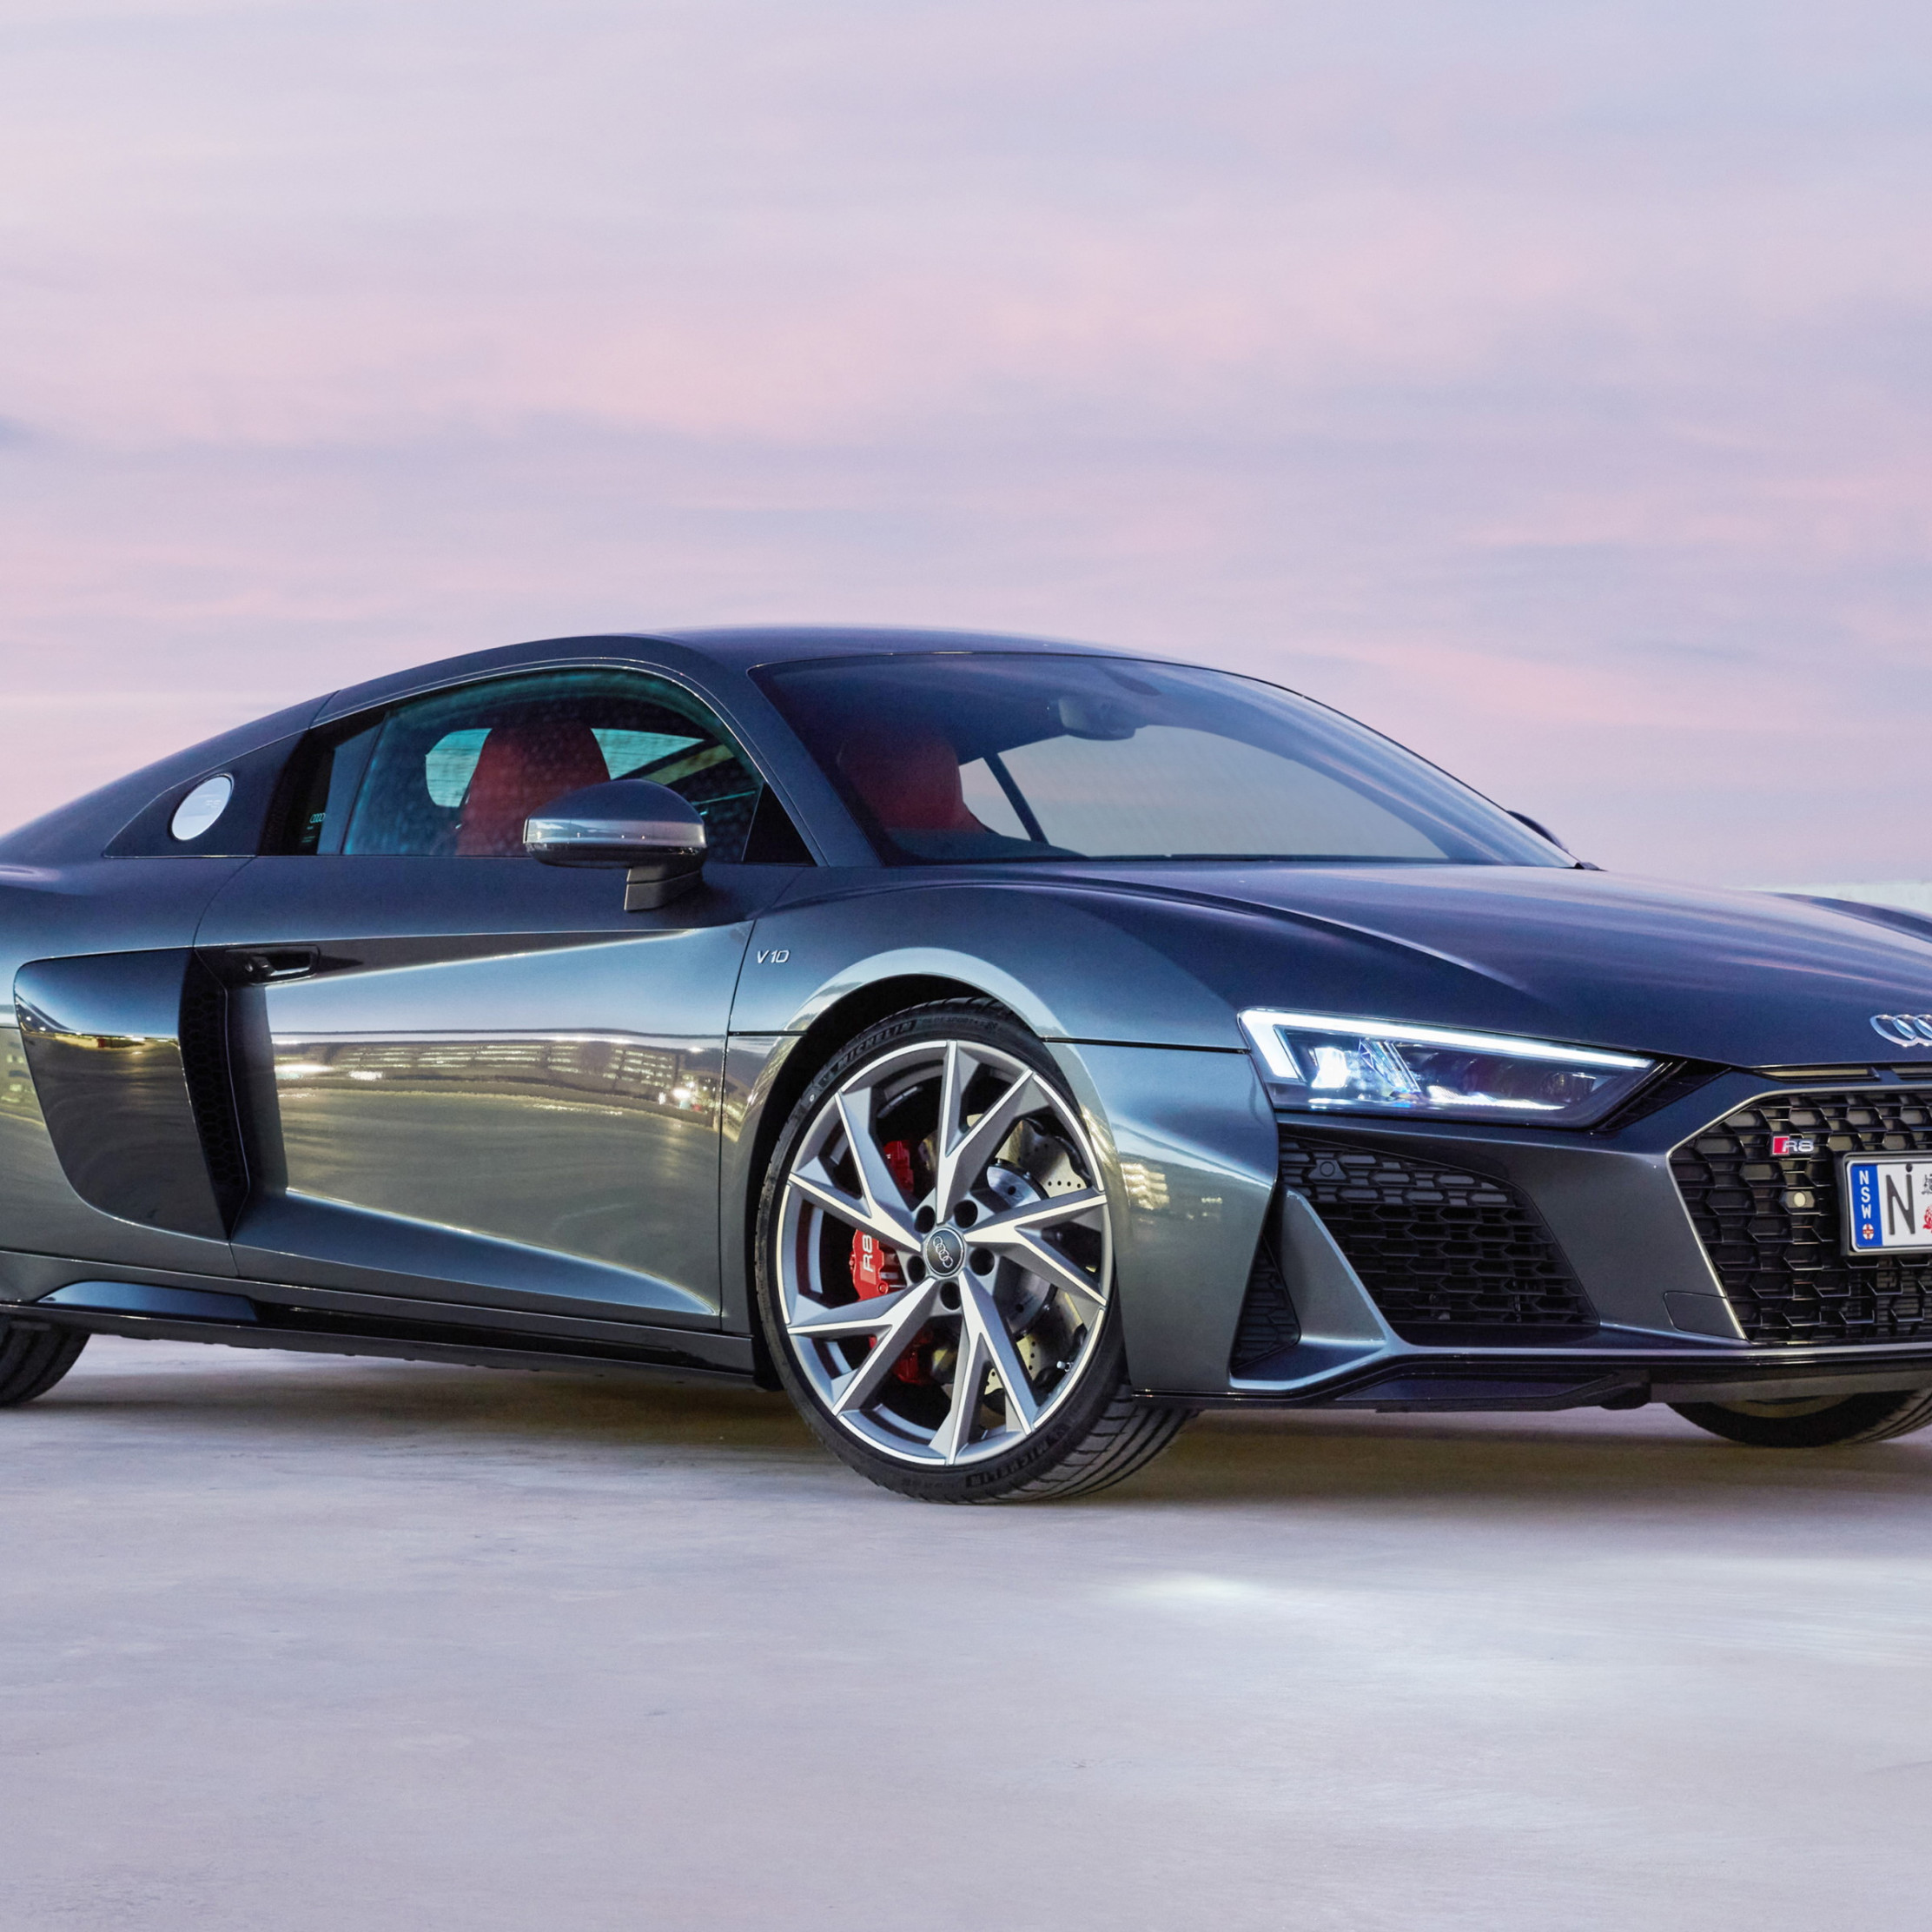 Audi R8 V10 RWD Coupe wallpaper 2224x2224